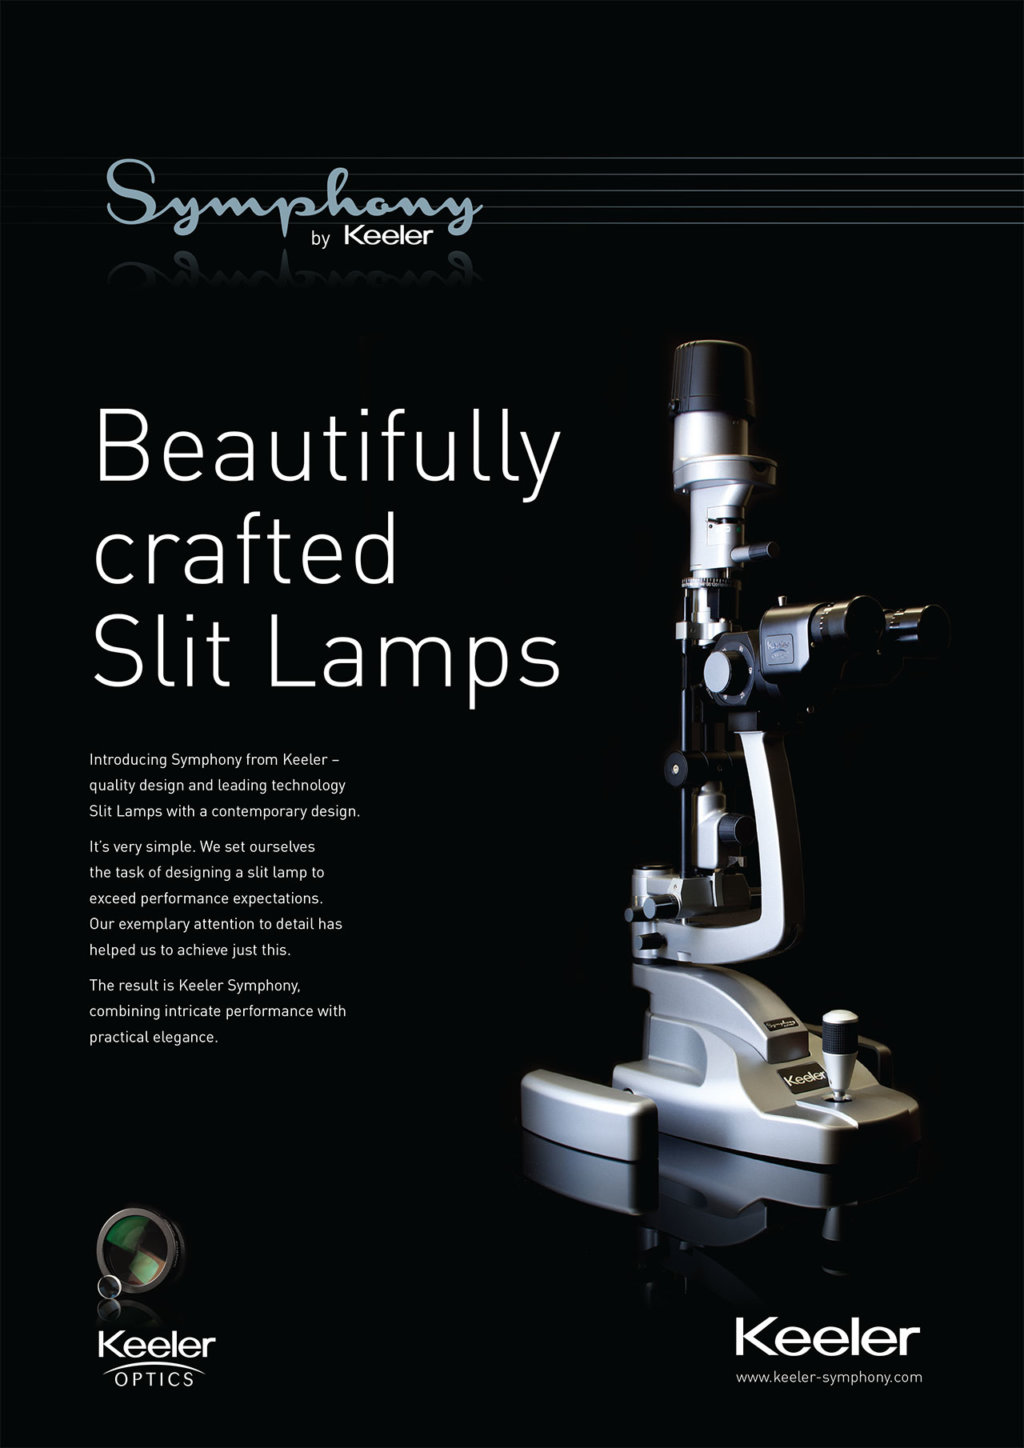 keeler symphony slit lamp advert